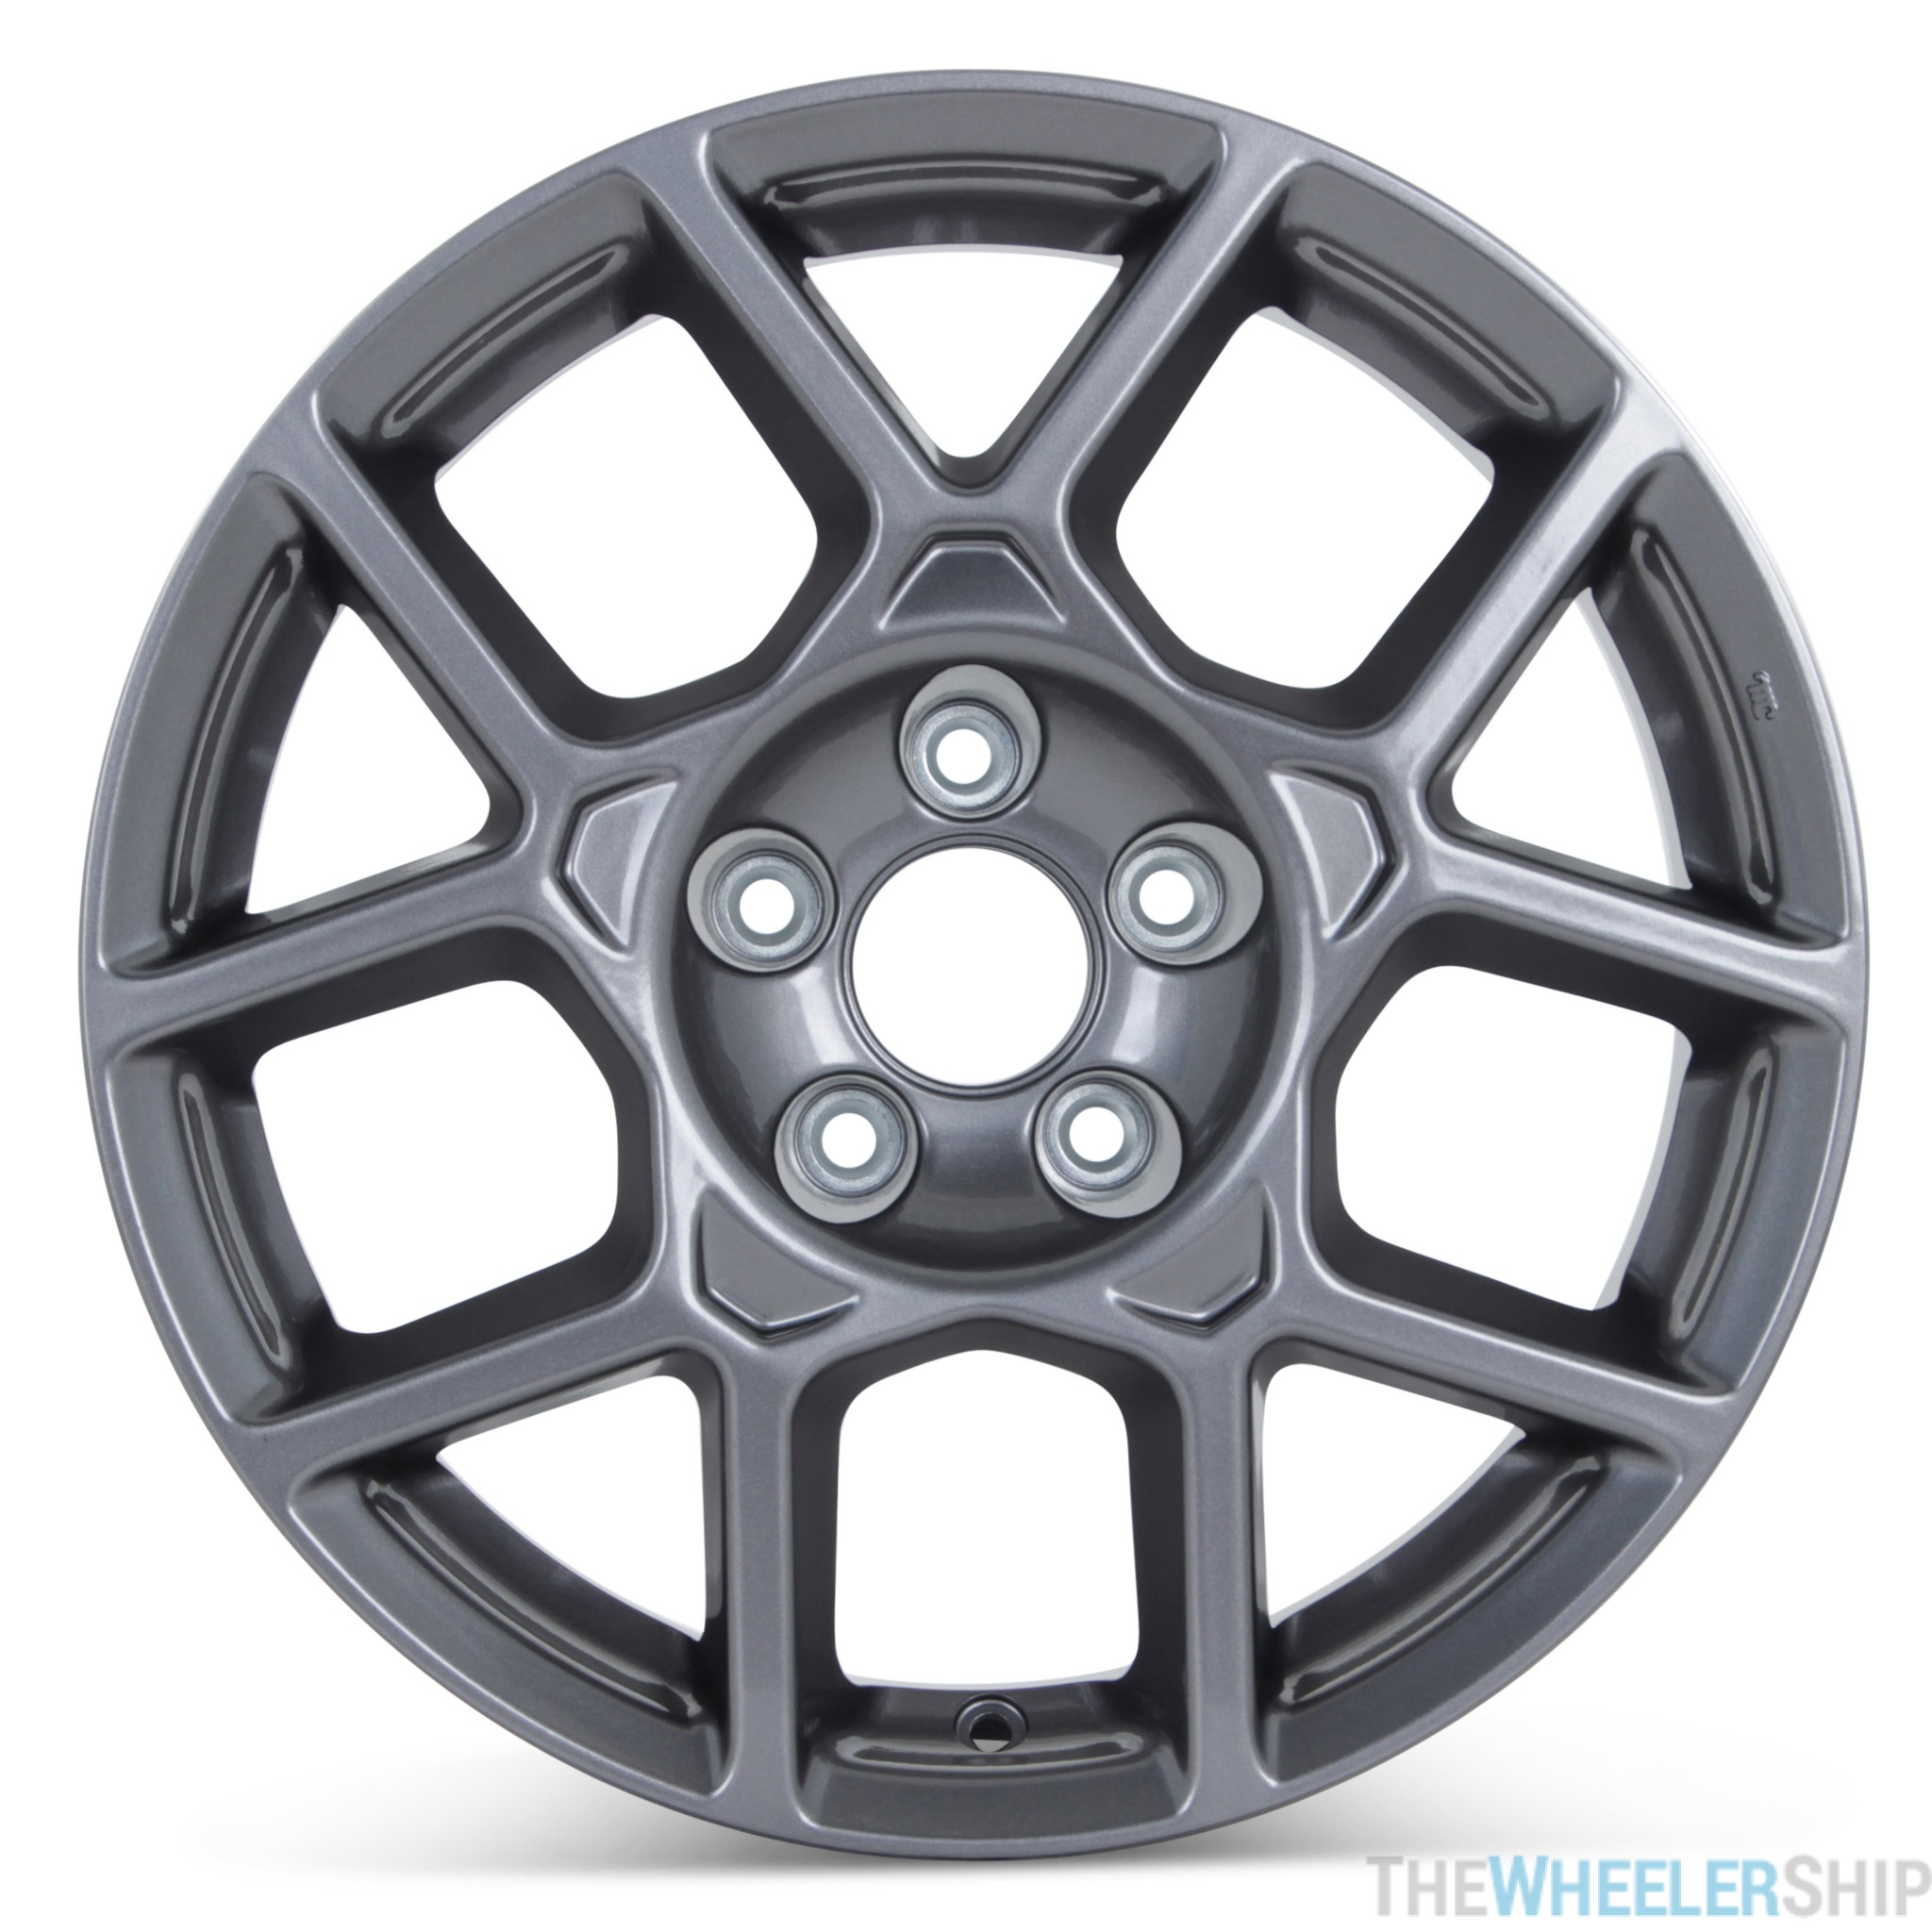 2007-2008 Acura TL Type-S Wheels for Sale - TL Type-S Wheels